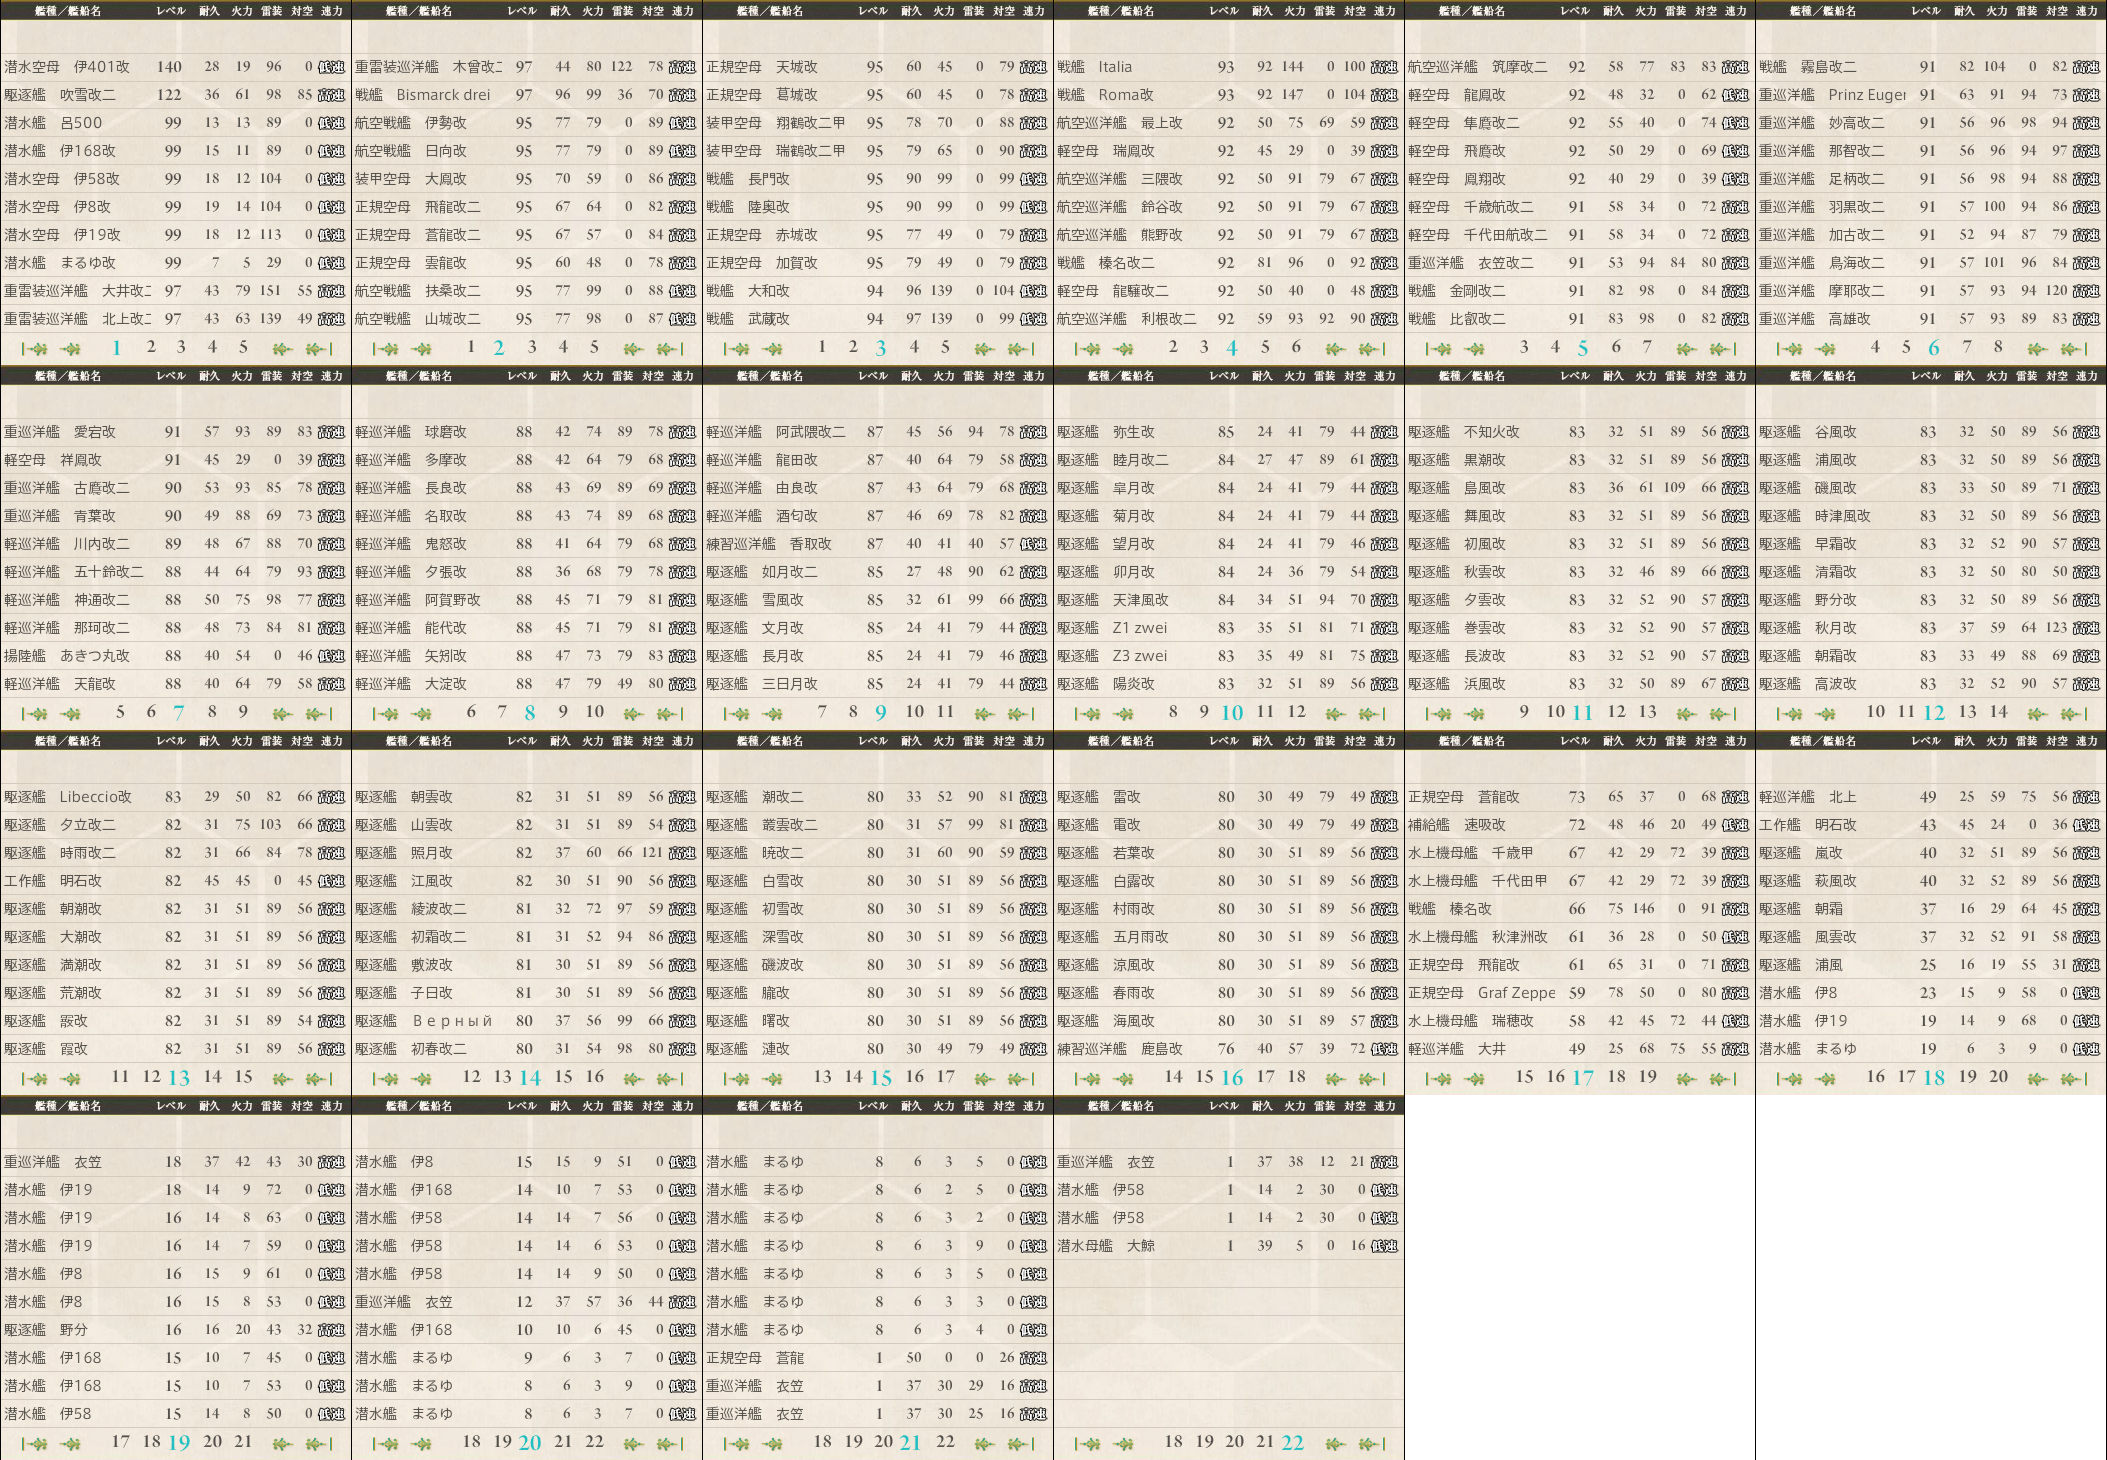 data.kancolle.levelsort.20151227.png